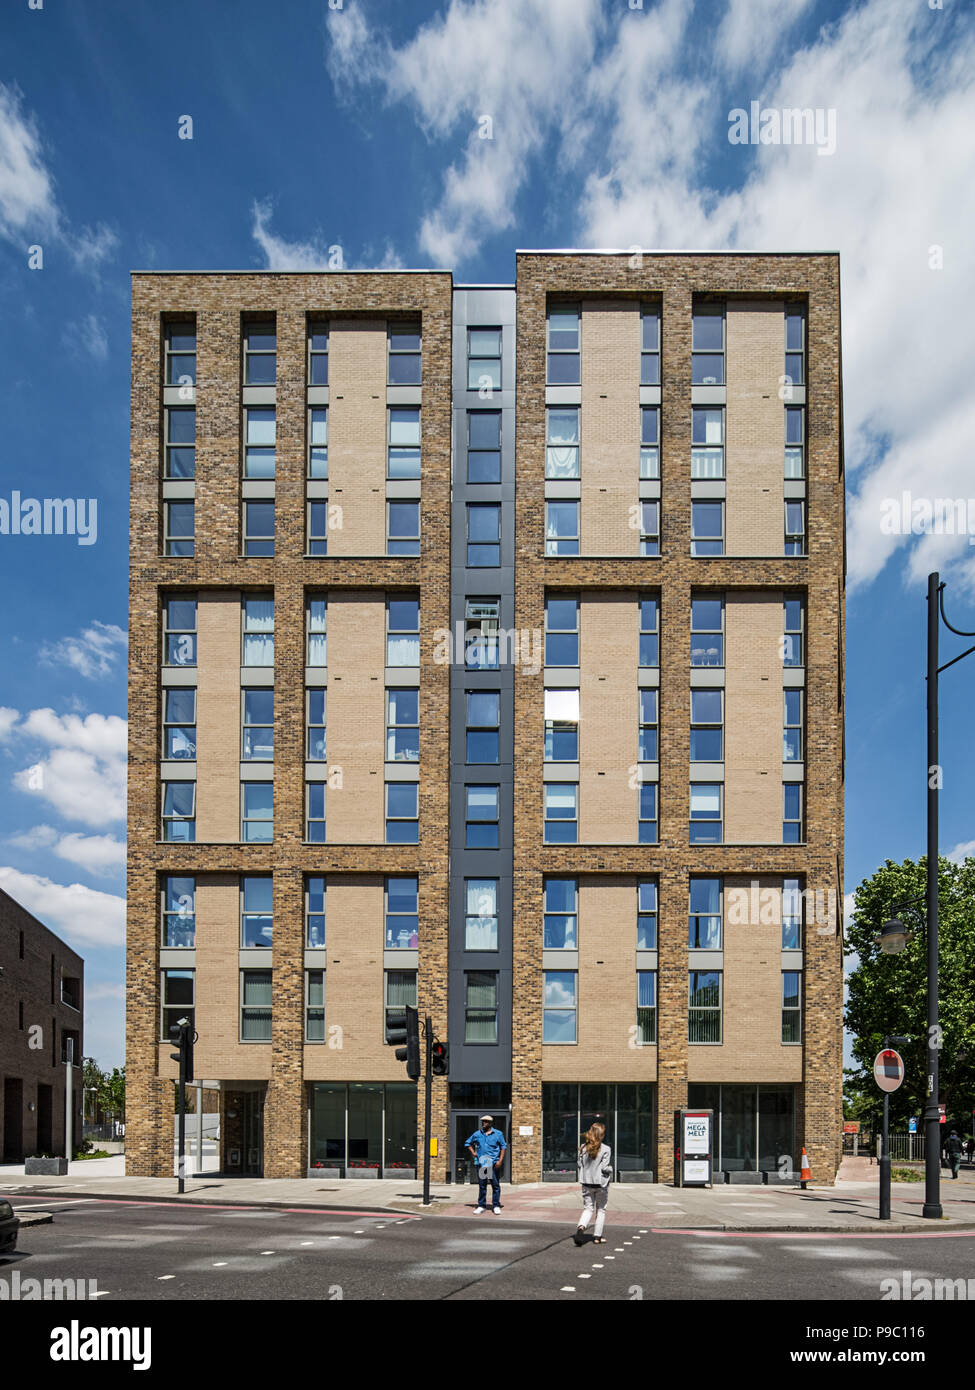 The Junction, Brixton - an urban regeneration project - Stock Image